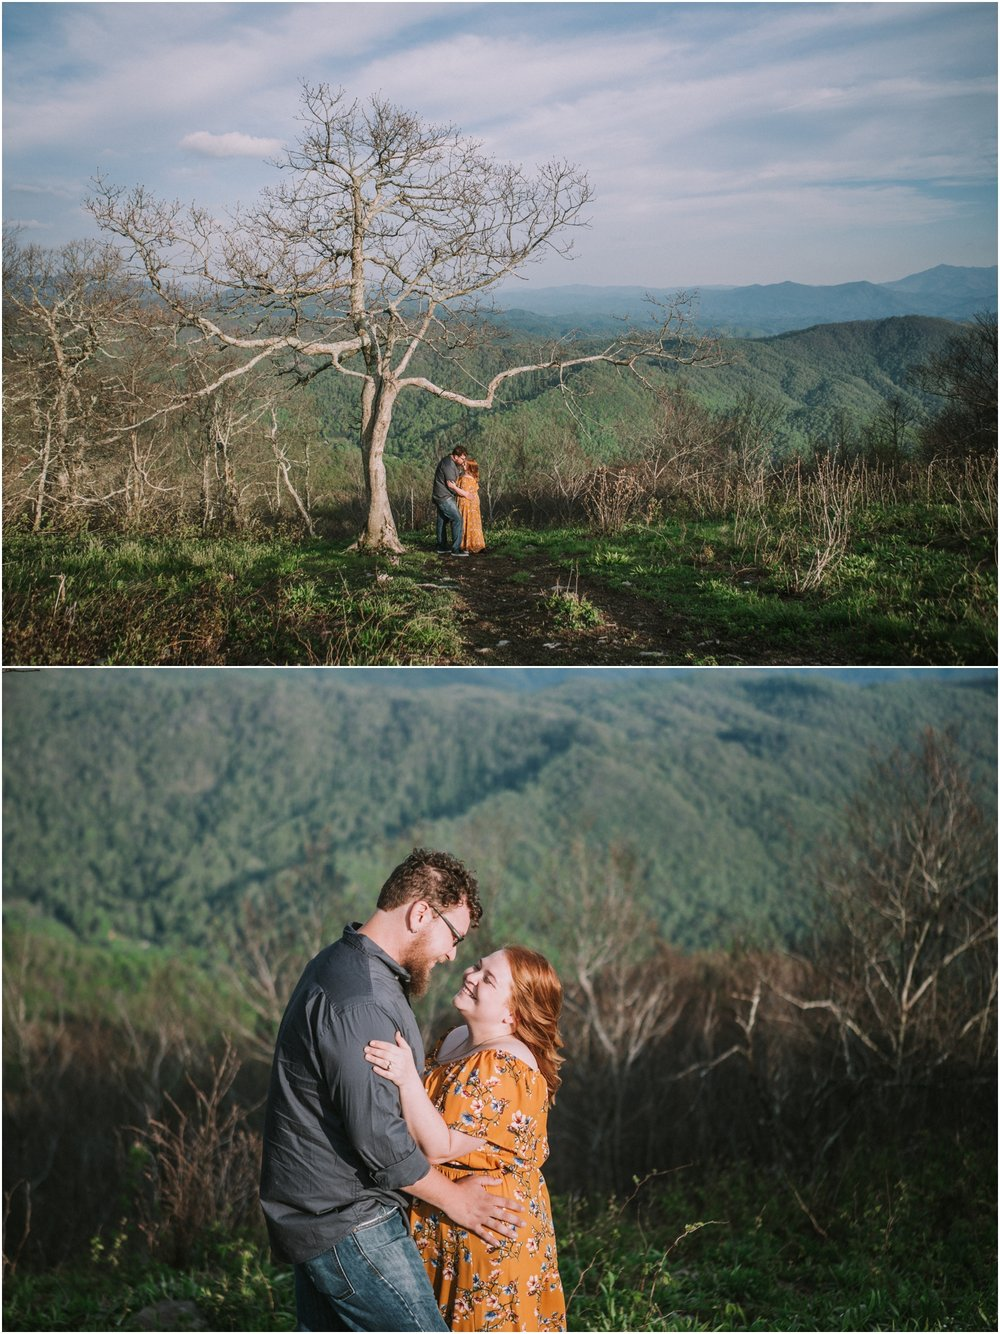 katy-sergent-photography-beauty-spot-unaka-mountain-engagement-blue-ridge-mountains-appalachian-trail-adventurous-couple-elopement-johnson-city-wedding-photographer_0008.jpg